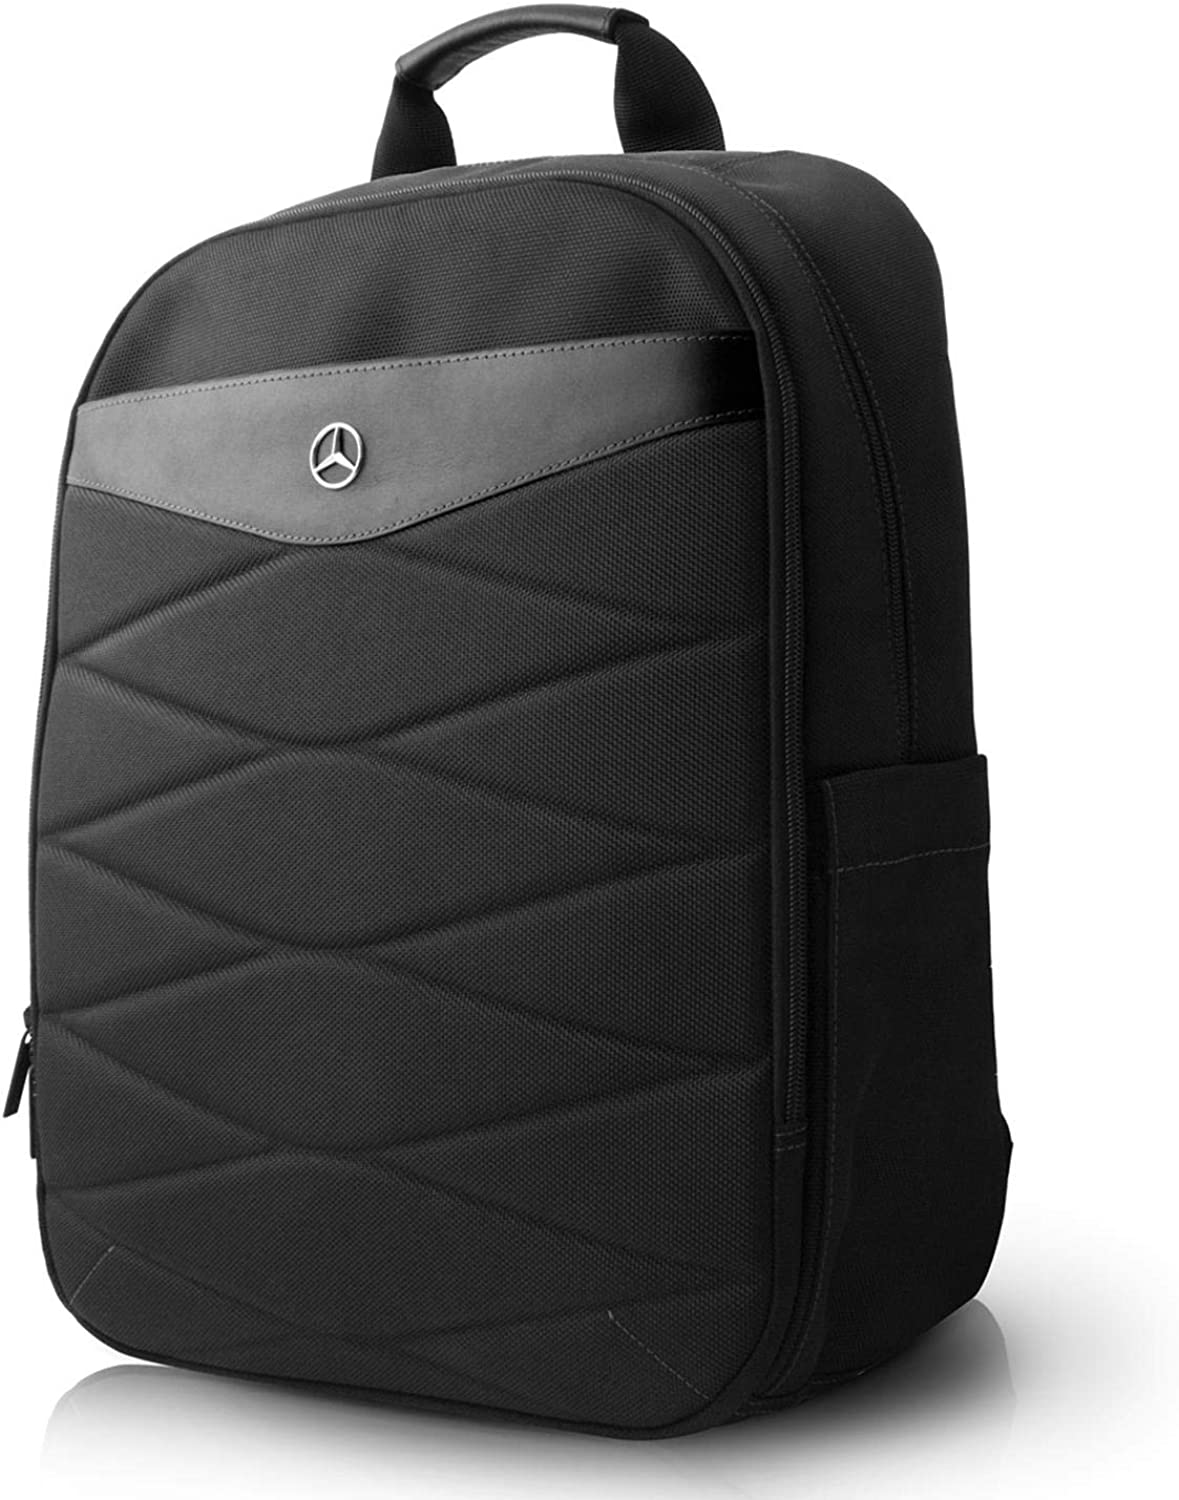 """Mercedes-Benz Computer BackPack 15"""" 15.6"""" Nylon with PU Leather Plate MacBook Pro Bag and a Slim-Fit pocket for an iPad, iPad Mini, or tablet up to 10.1'' Black Pattern III"""